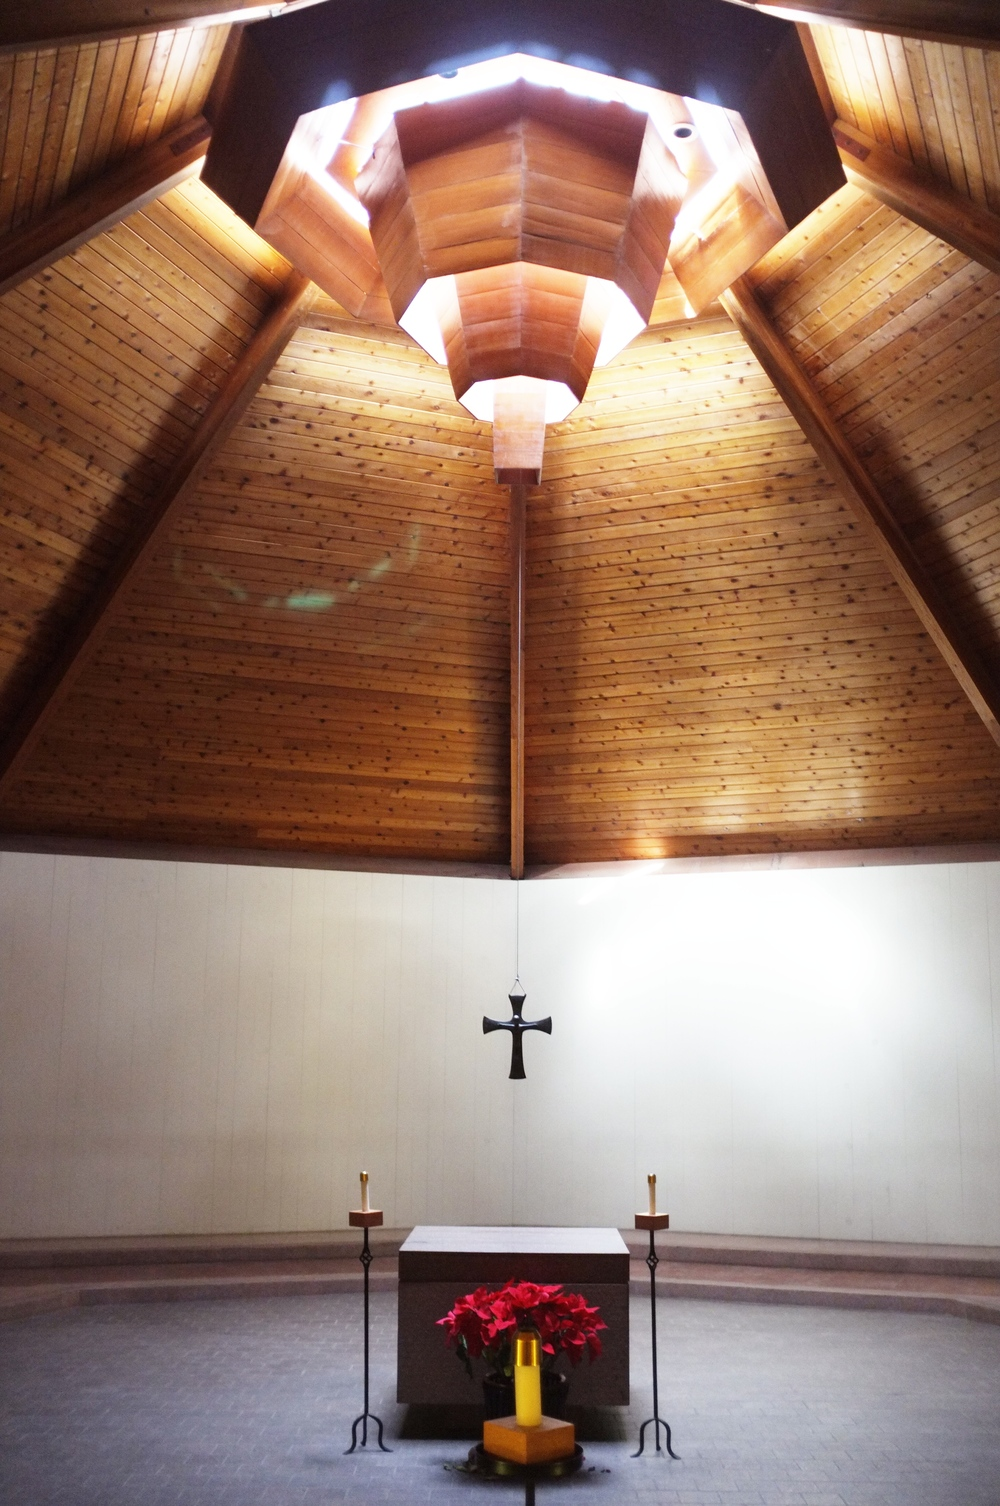 Inide the chapel